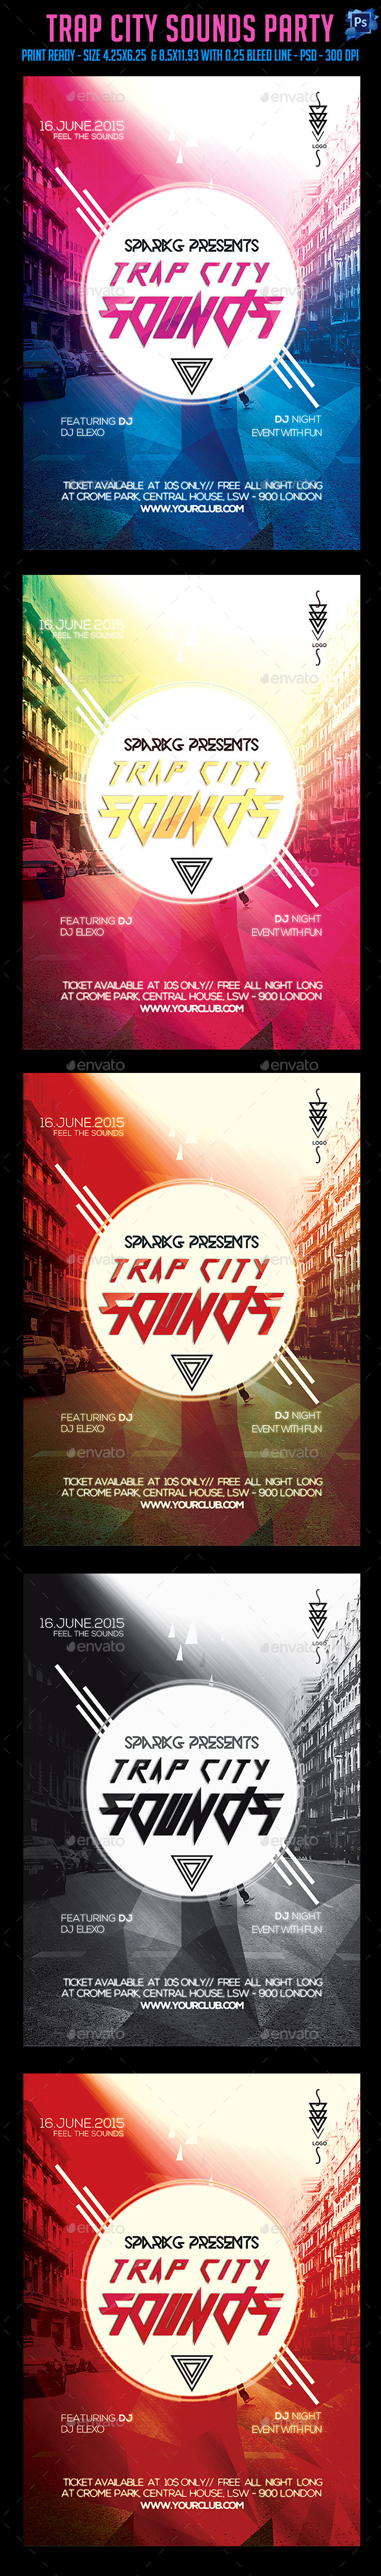 Trap City Sounds Flyer - Clubs & Parties Events